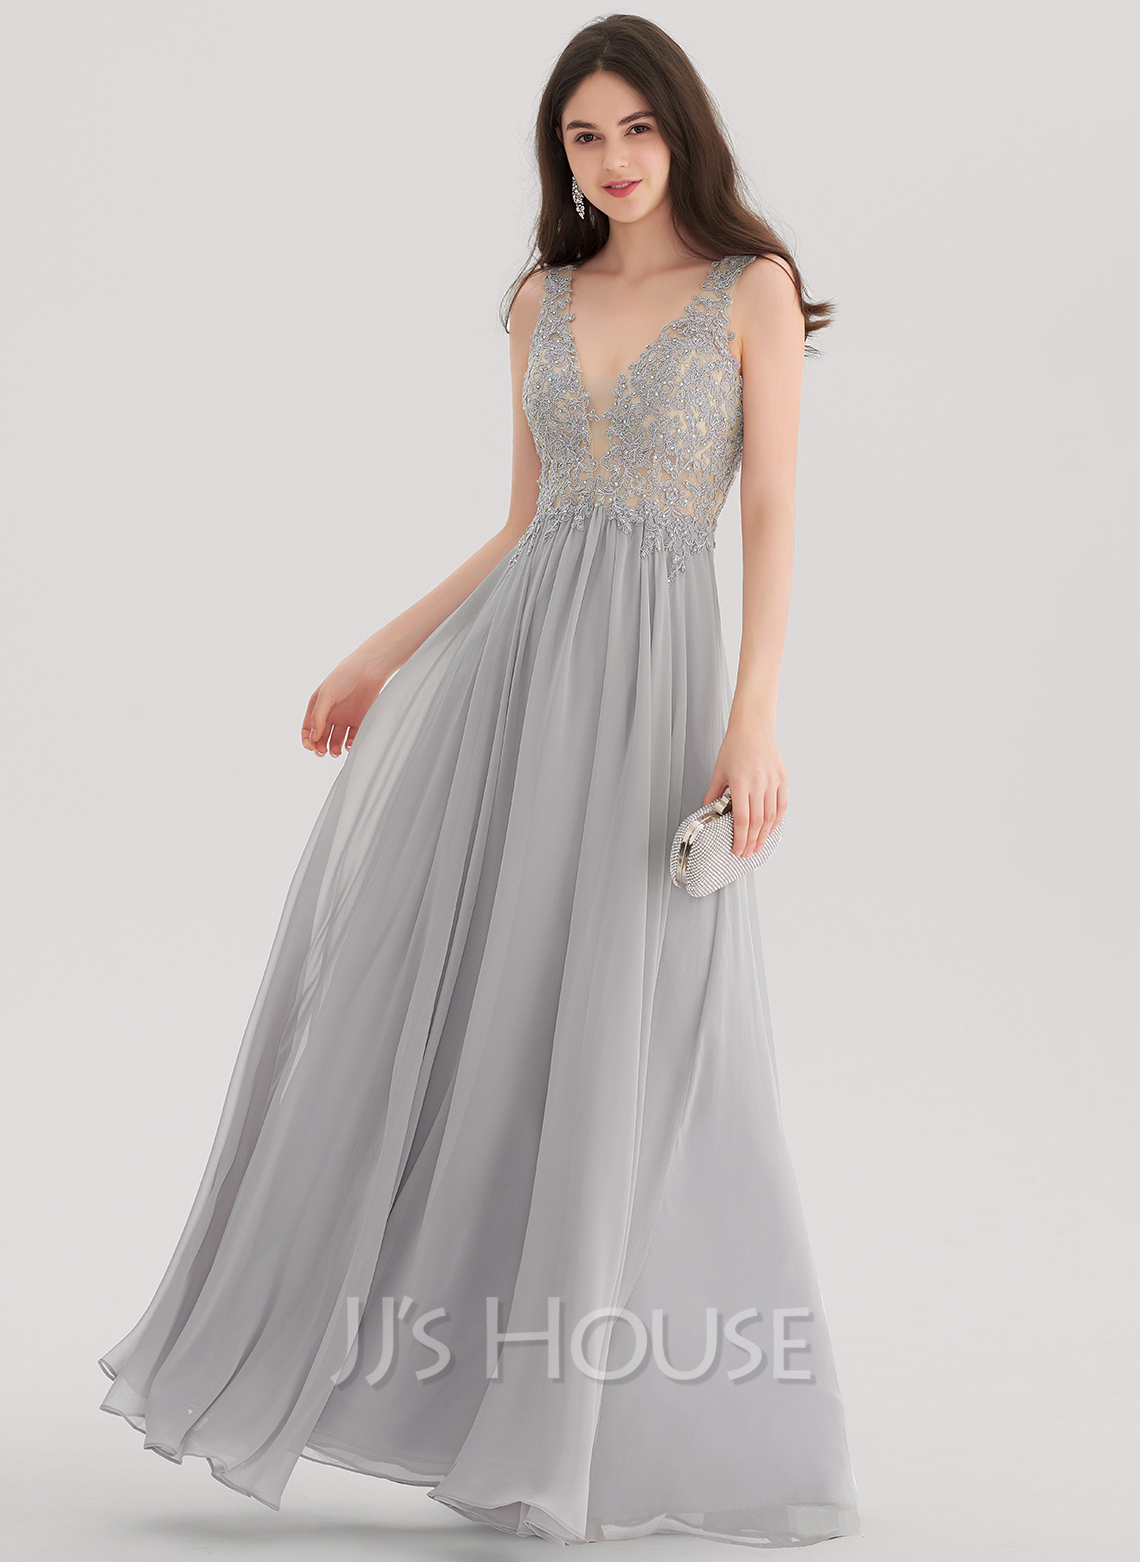 Used Prom Dress Sales In Wichita Ks | JJ\'sHouse